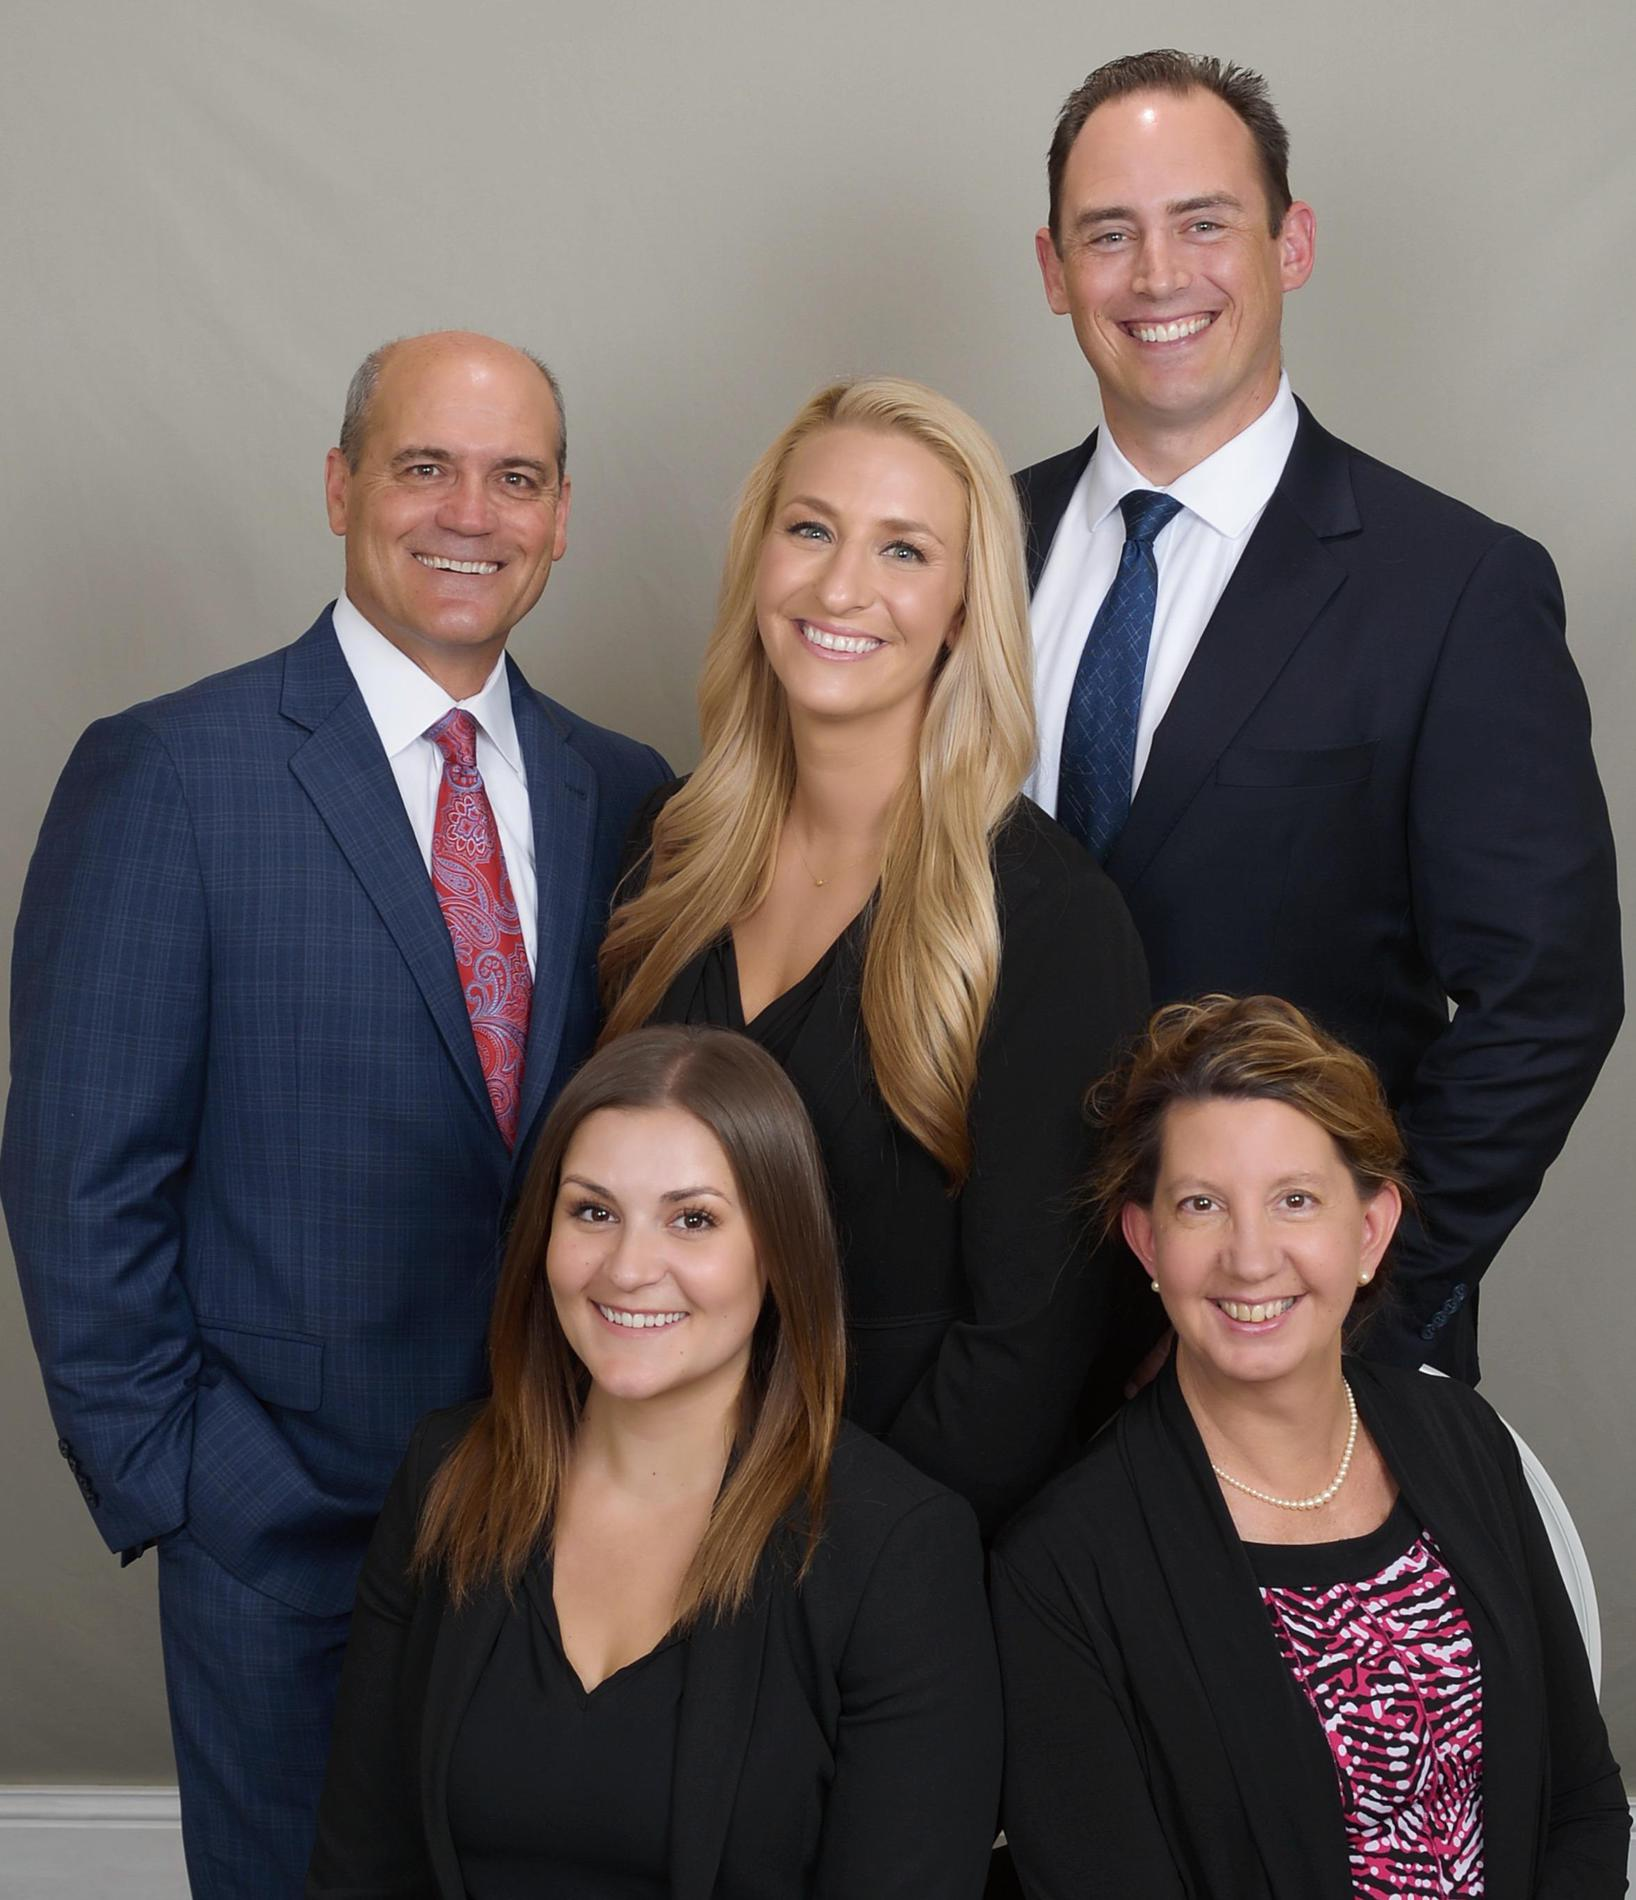 The Silva Group | Palmdale, CA | Morgan Stanley Wealth